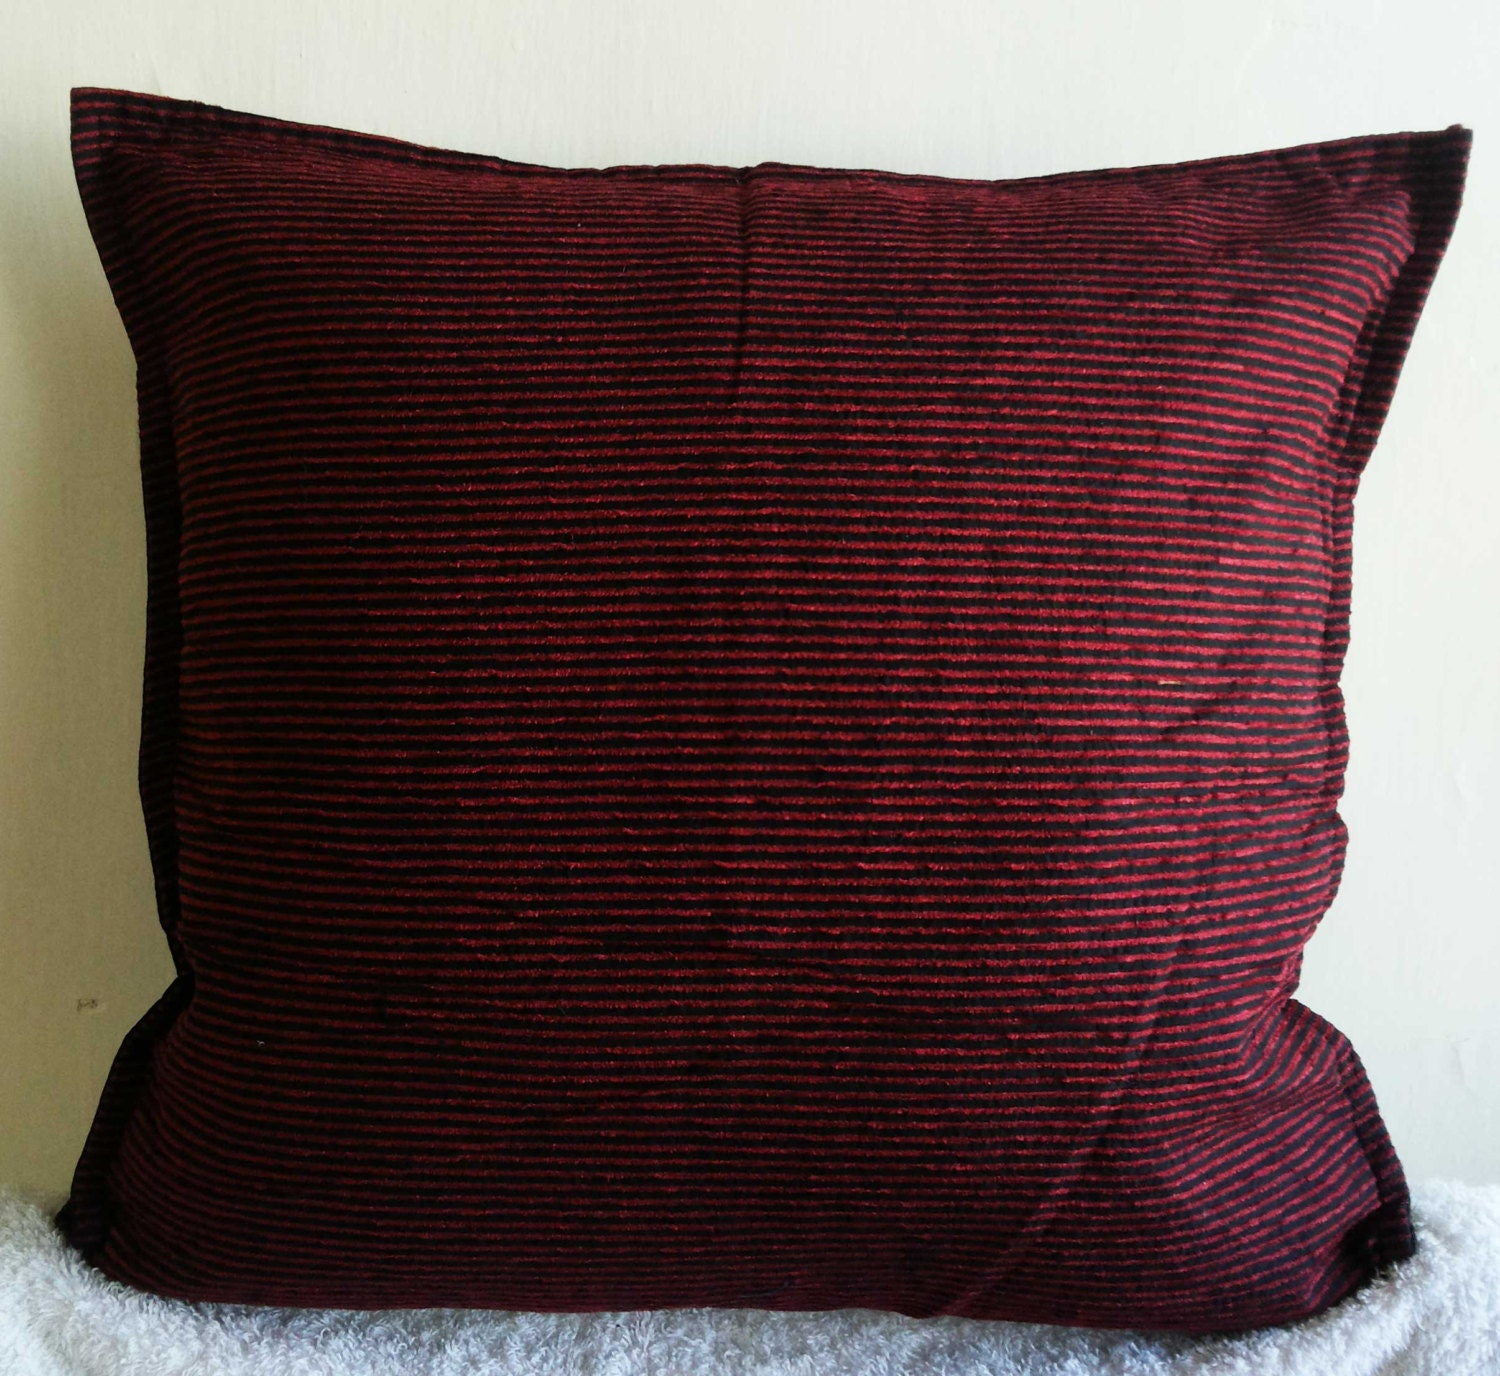 Decorative throw pillow covers 16x16 red black by knotnstitch - Decorative throw pillows ...